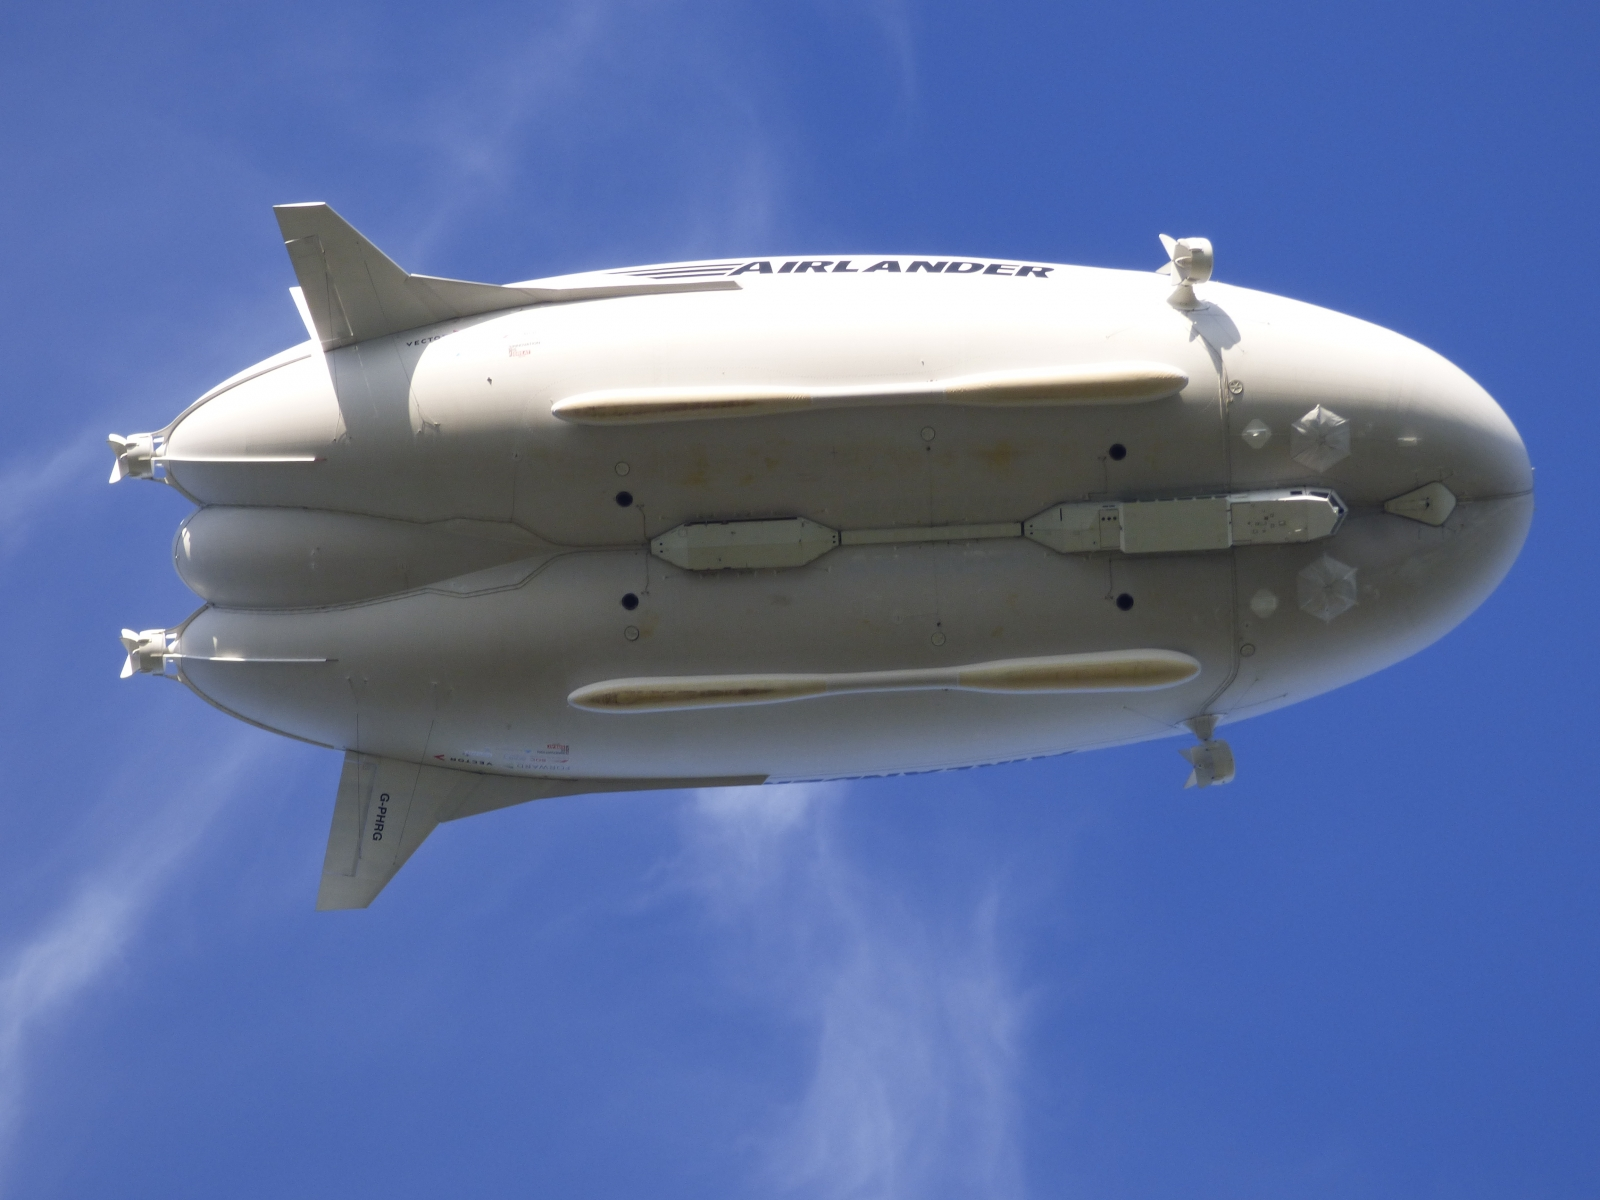 Airlander 10 from below